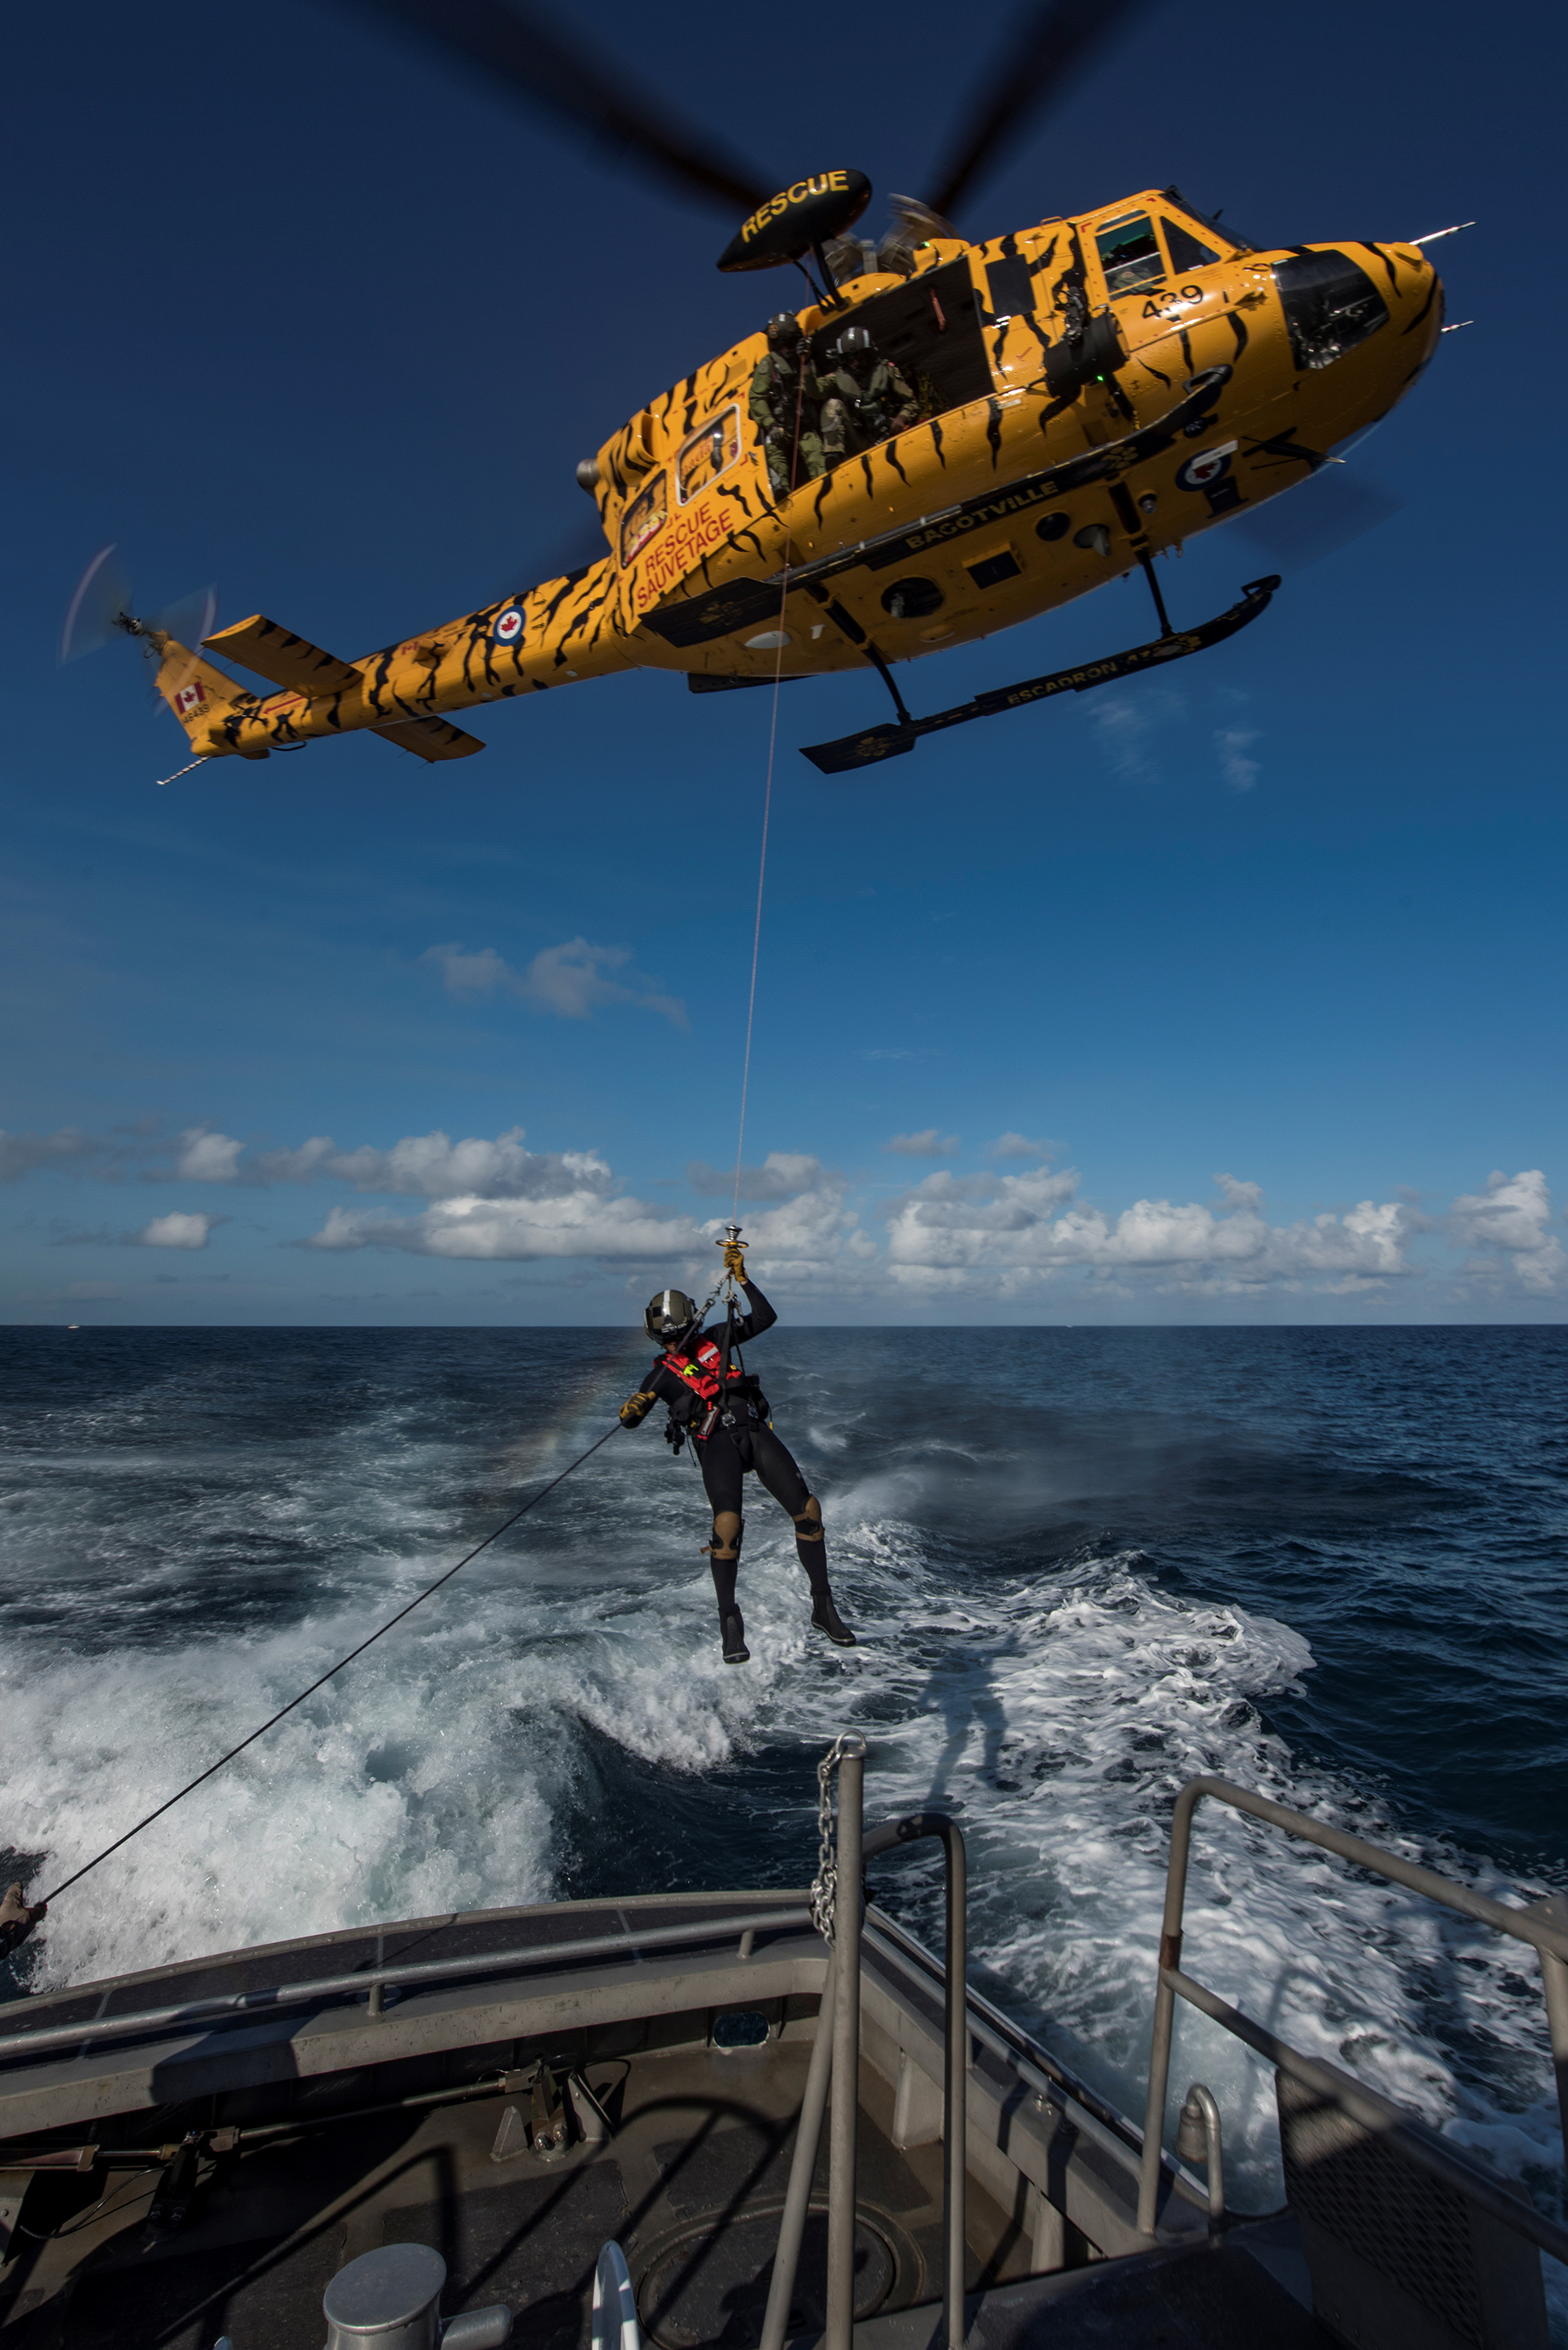 A search and rescue technician is lowered from A CH-146 Griffon helicopter onto a simulated vessel in distress off the coast of Miami, Florida, during Exercise Southern Breeze on February 7, 2017. PHOTO: Corporal Bryan Carter, CK04-2017-0062-010